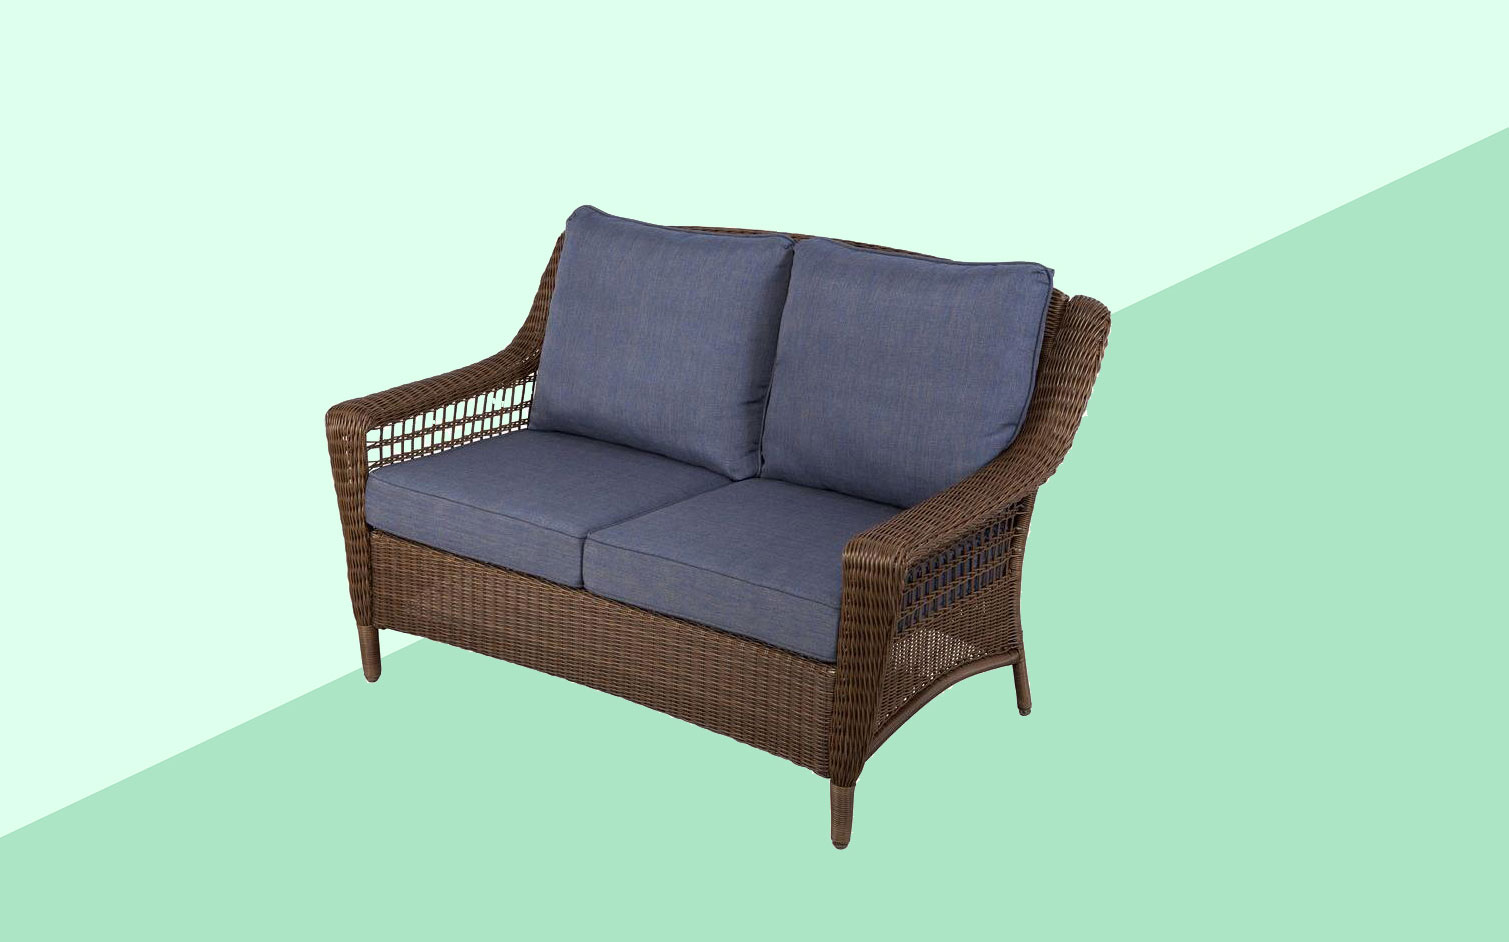 Hampton Bay Spring Haven Brown All-Weather Wicker Outdoor Loveseat with Sky Blue Cushions